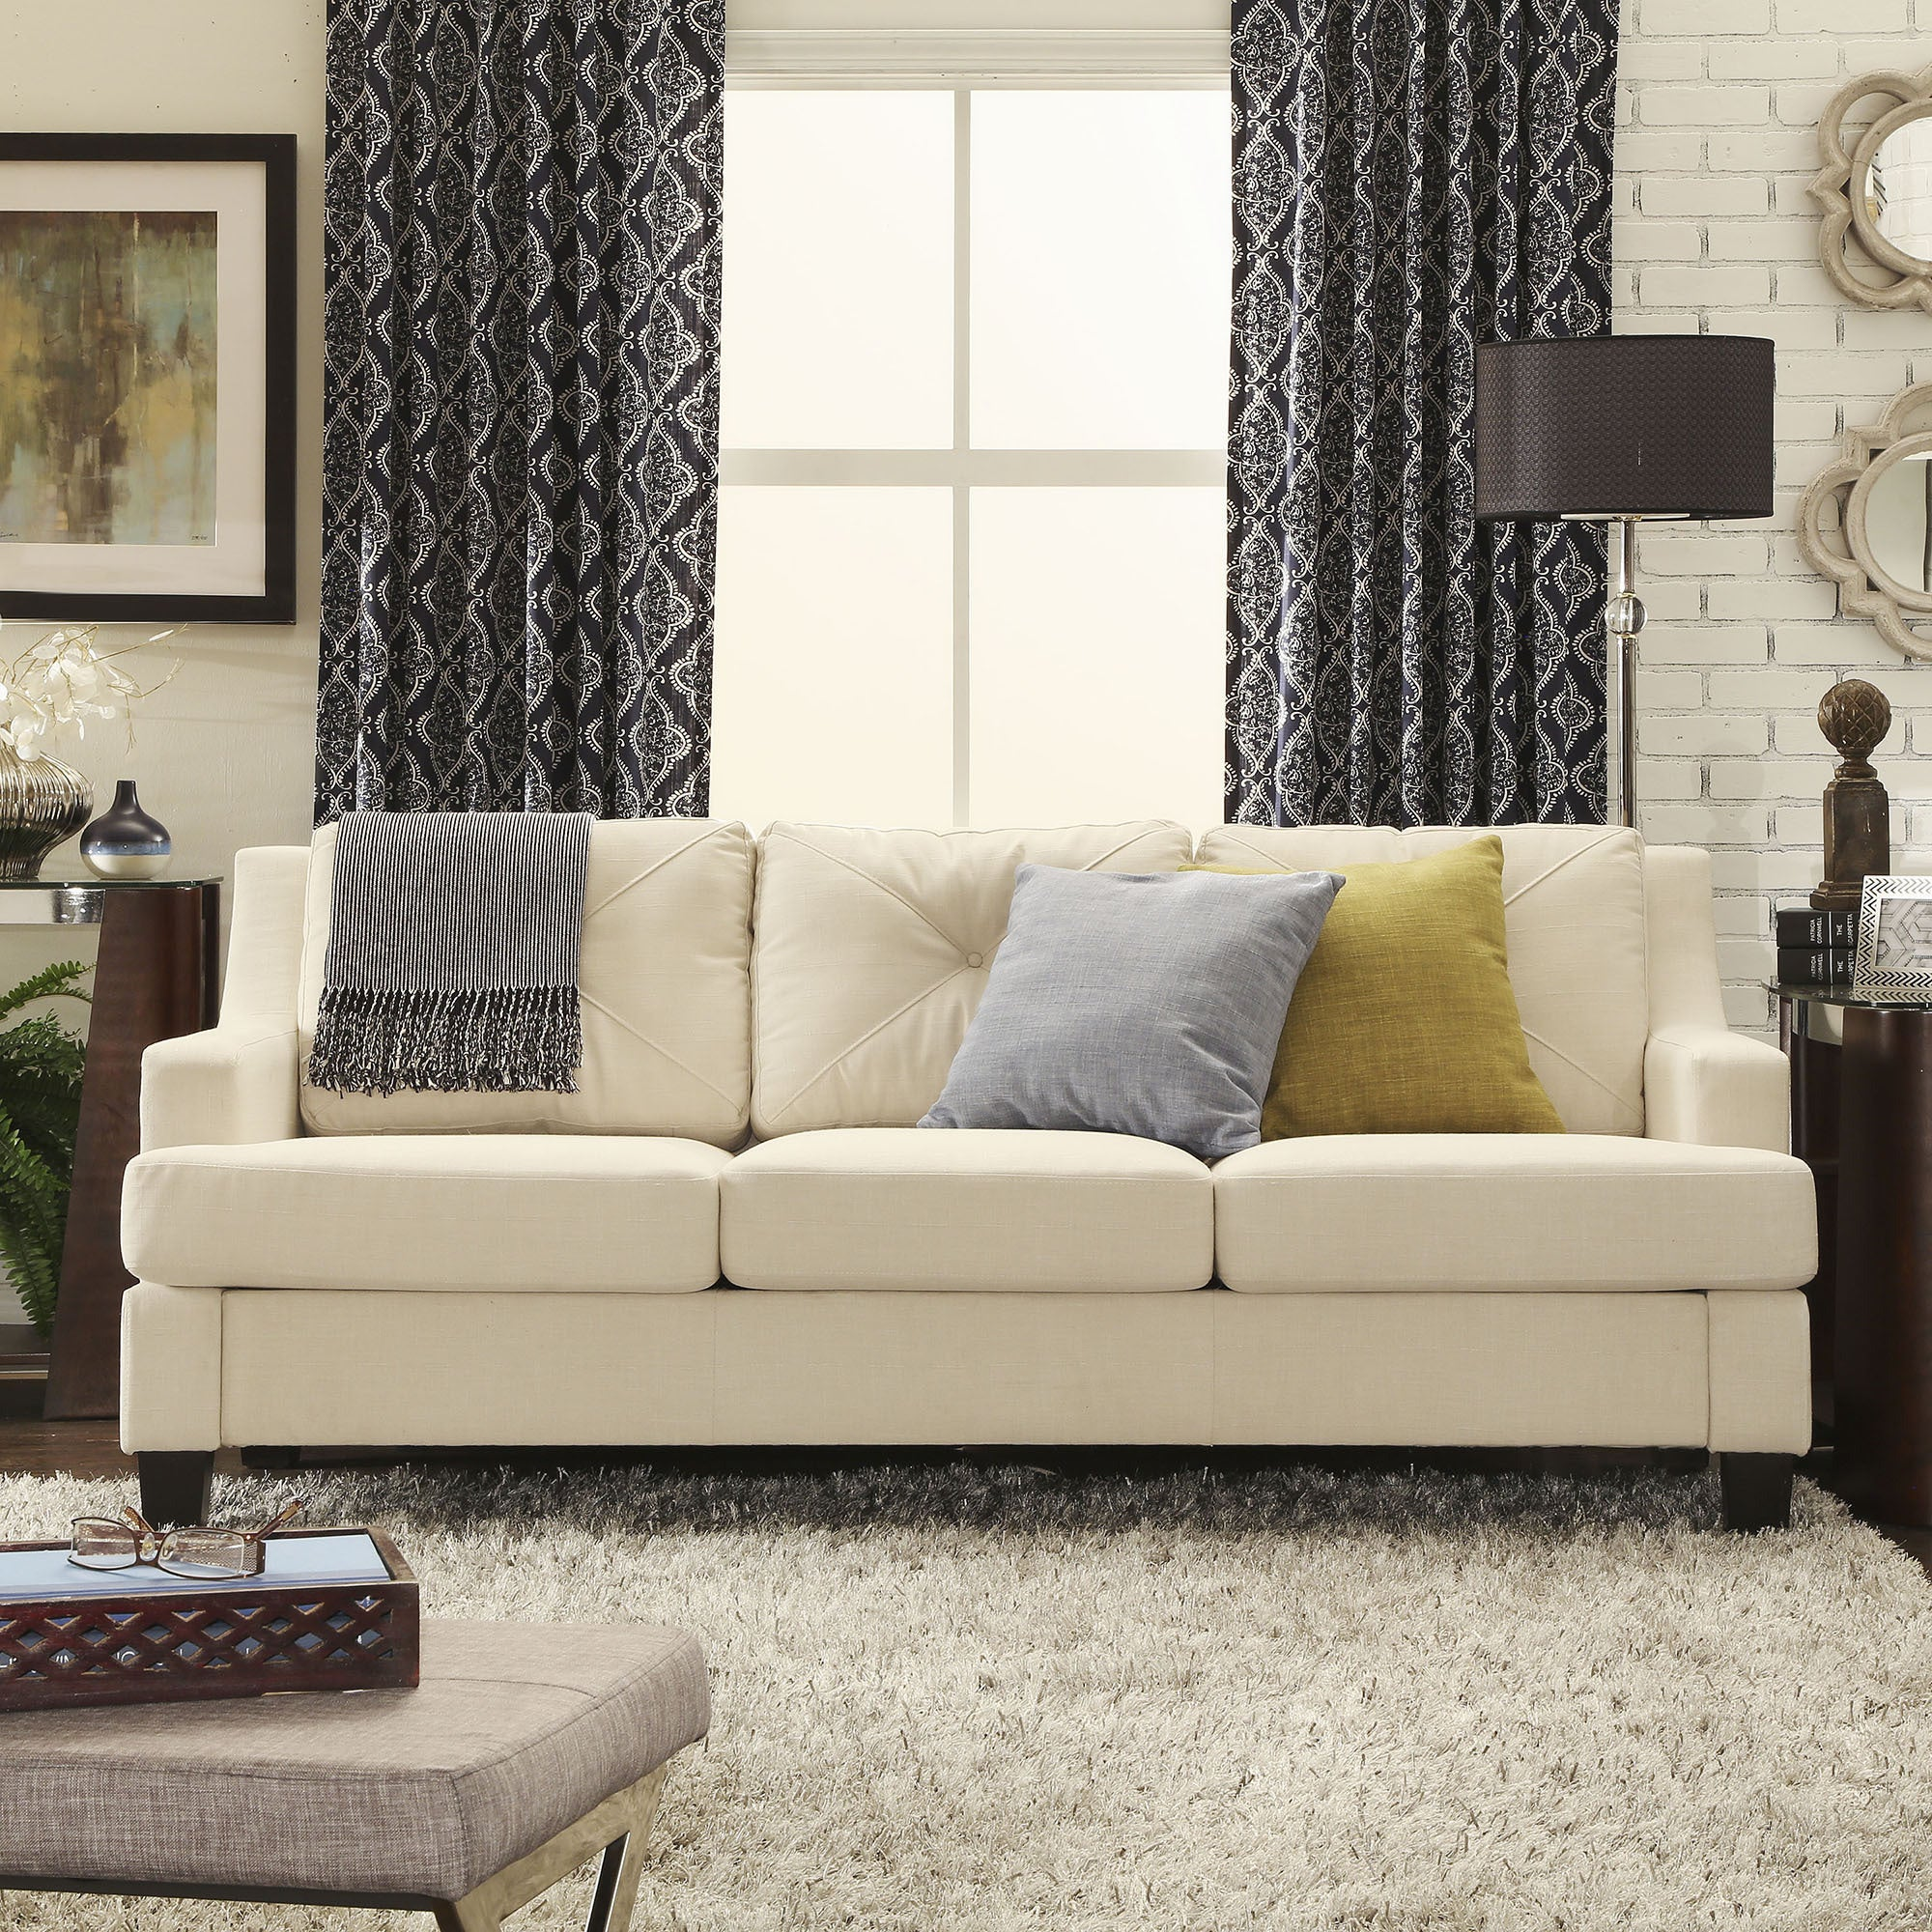 Elston Linen Tufted Sloped Track Sofa iNSPIRE Q Modern - Free Shipping  Today - Overstock.com - 16087013